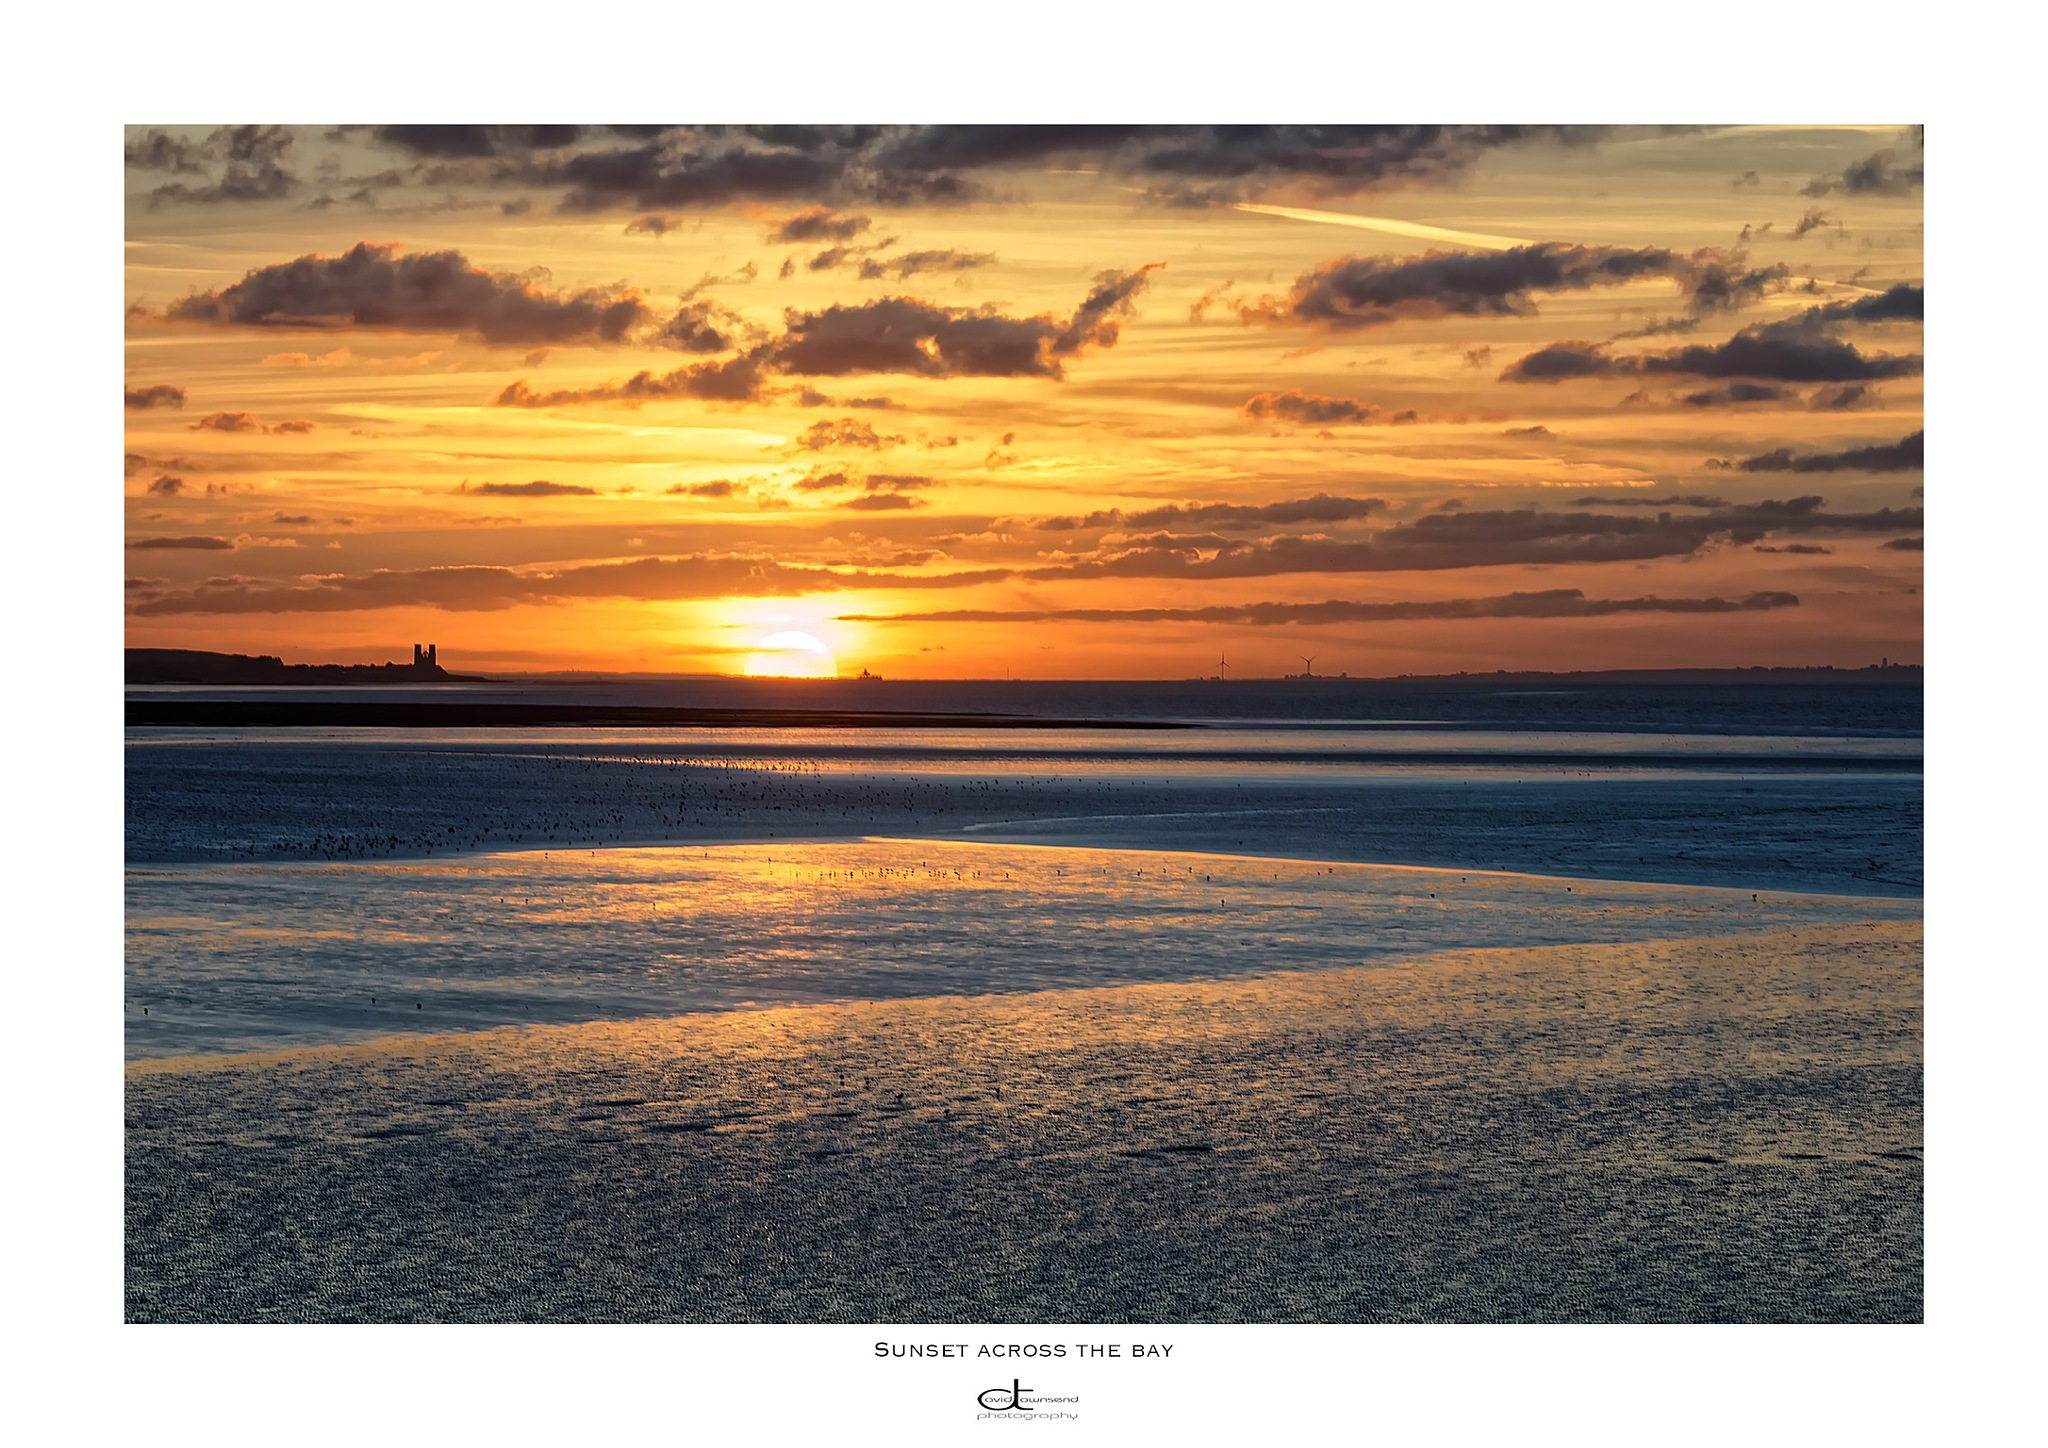 Sunset across the bay  by David Townsend